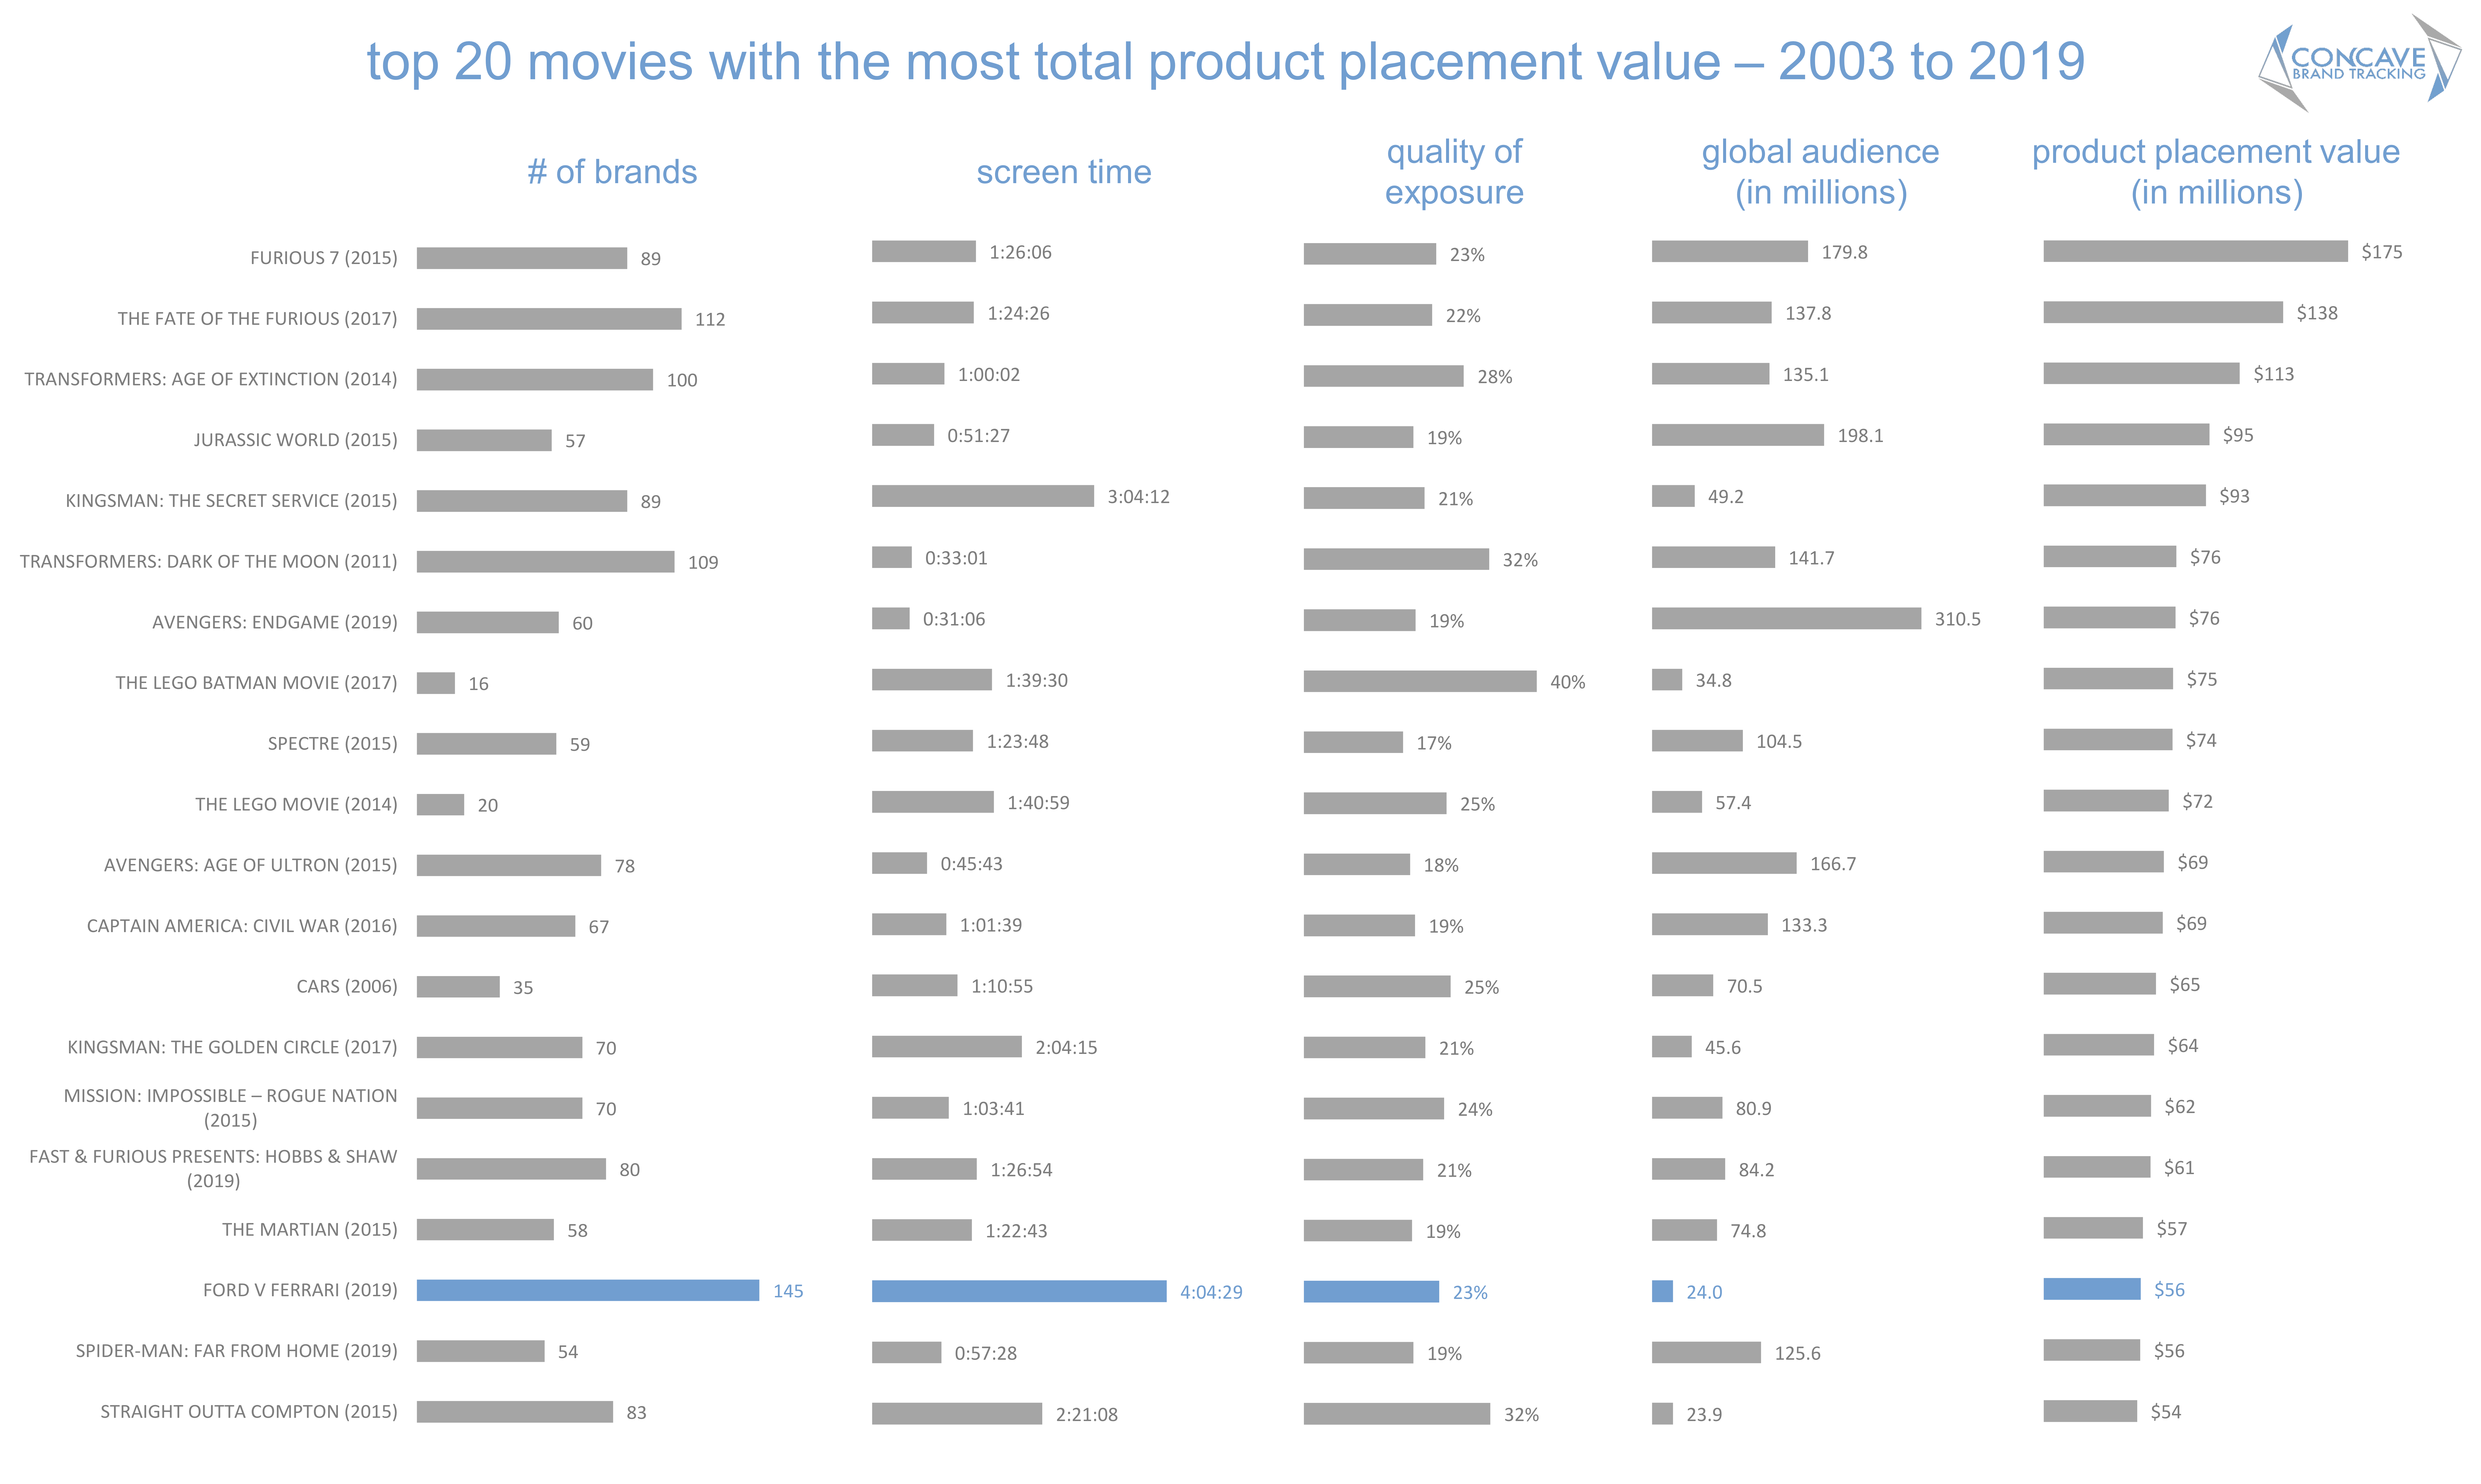 Concave brand tracking, product placement, brands, movies, entertainment marketing, branded integration, integration marketing, analysis, valuation, metrics, measurement, concave, Oscars, 2020, academy awards, Ford V Ferrari, ford, Ferrari, Christian Bale, Matt Damon, brand visibility, value, Ted 2, the big short, number of brands, trainwreck, gone girl, what men want, the intern, bad moms, get hard, Ted